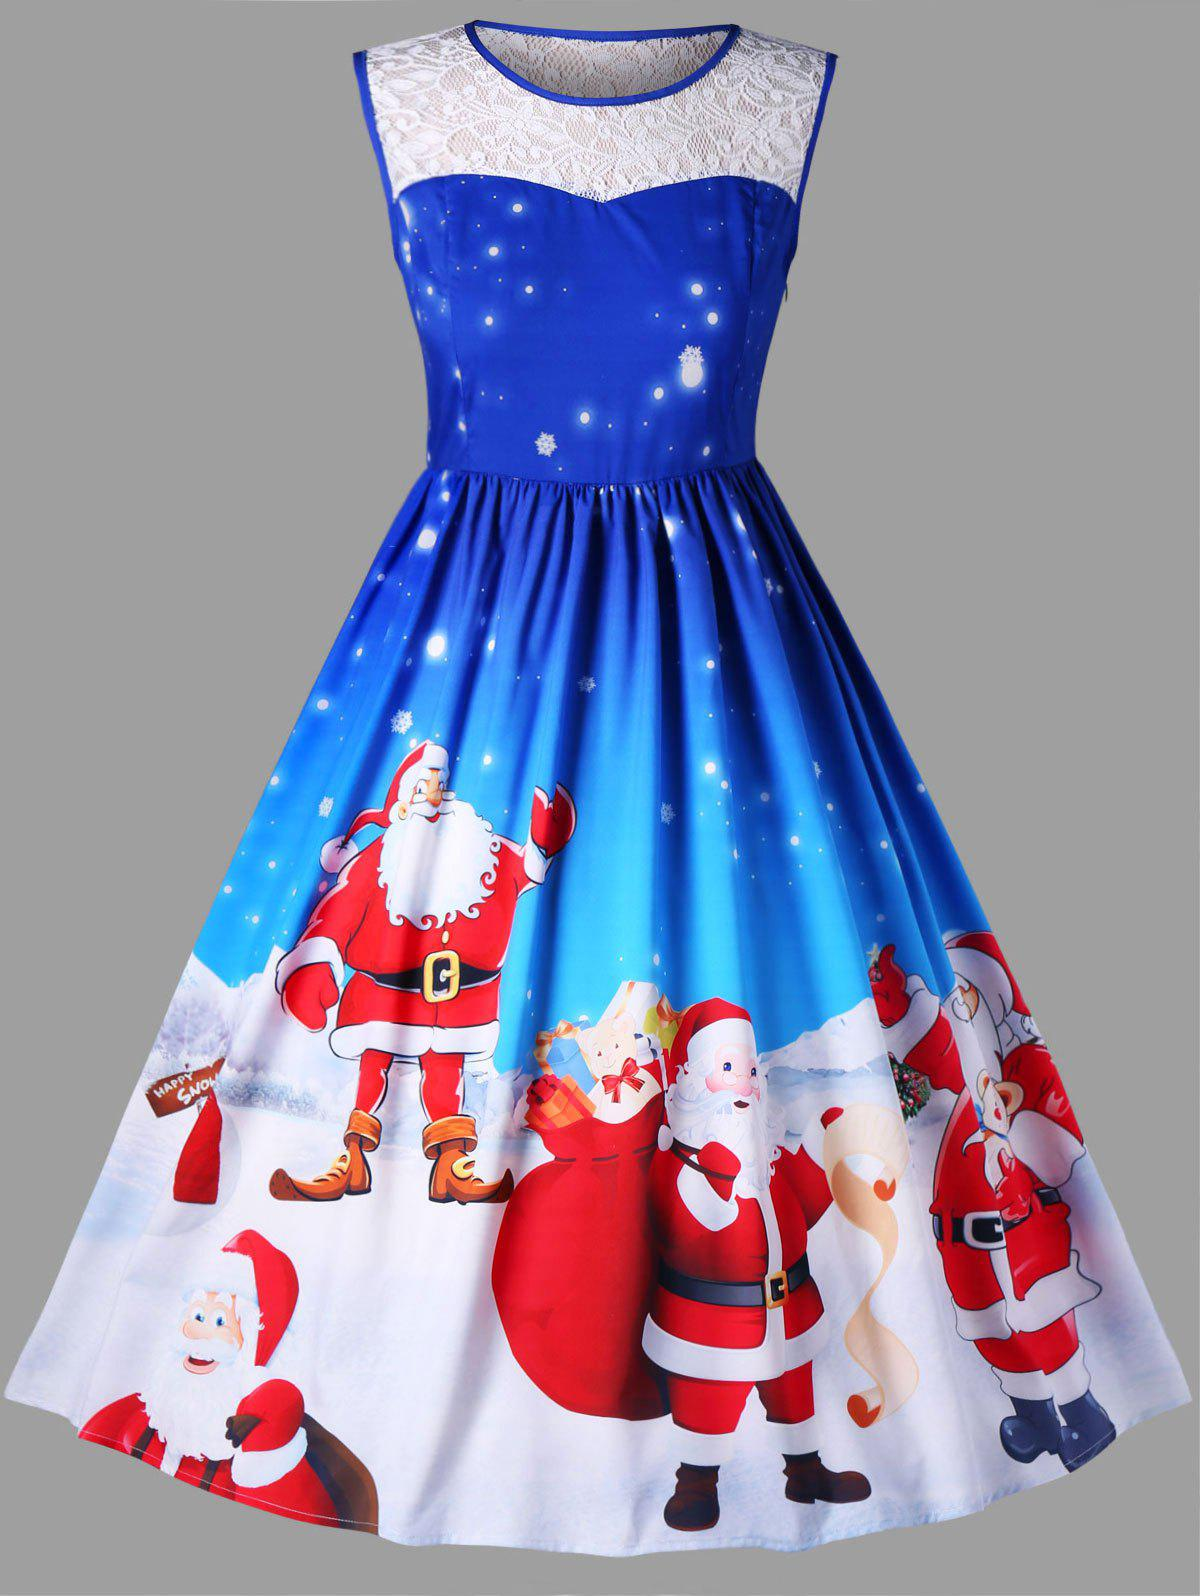 Hot Christmas Plus Size Santa Claus Sleeveless Swing Dress